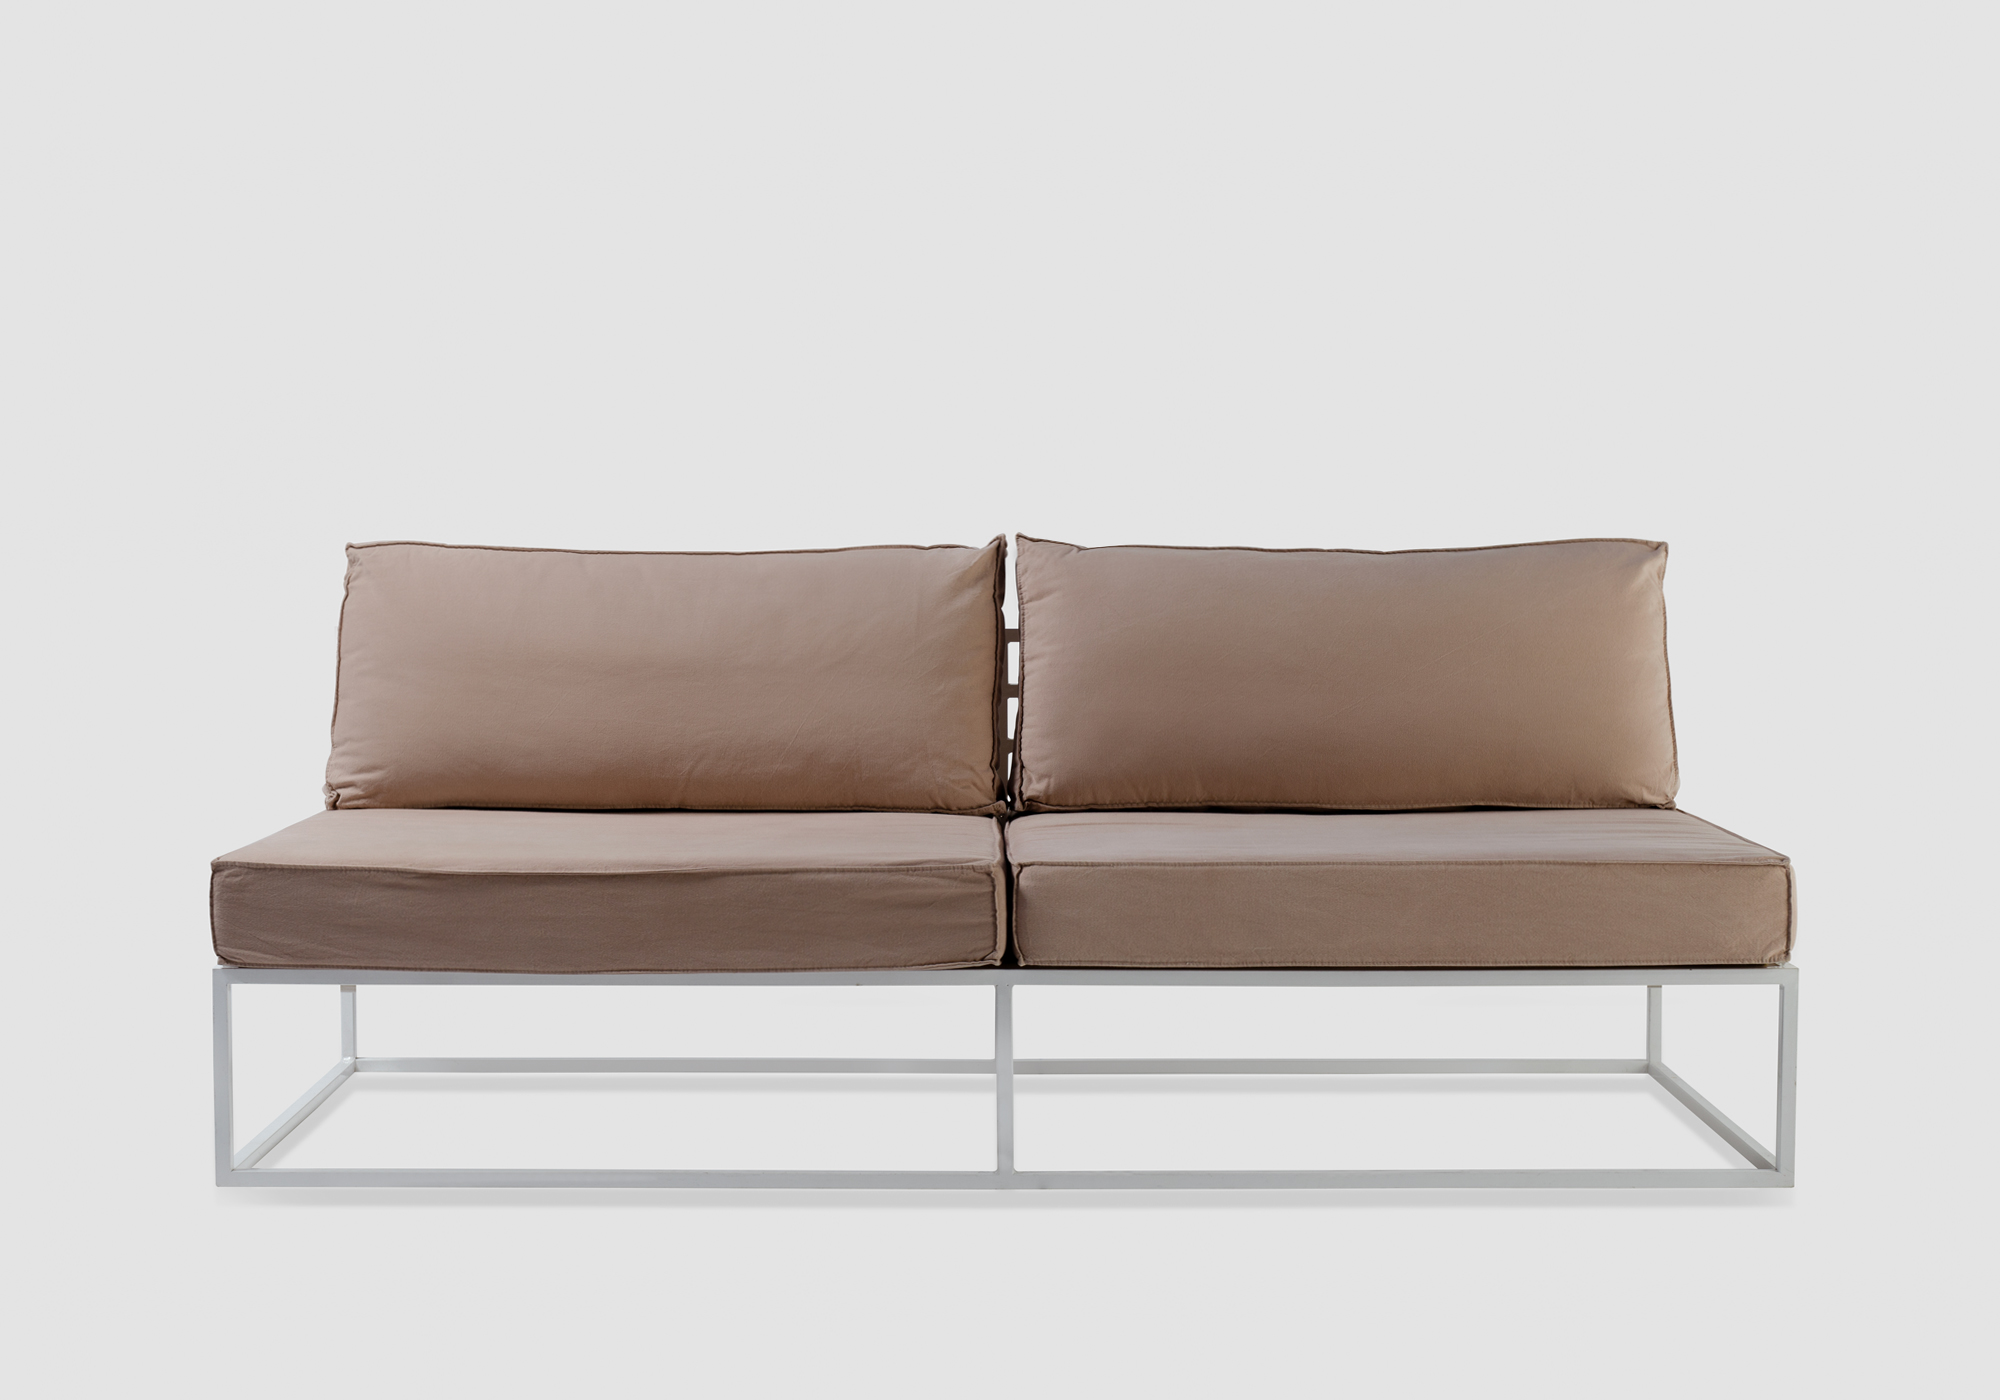 ... /Soho Sofa With Beige Pillows/